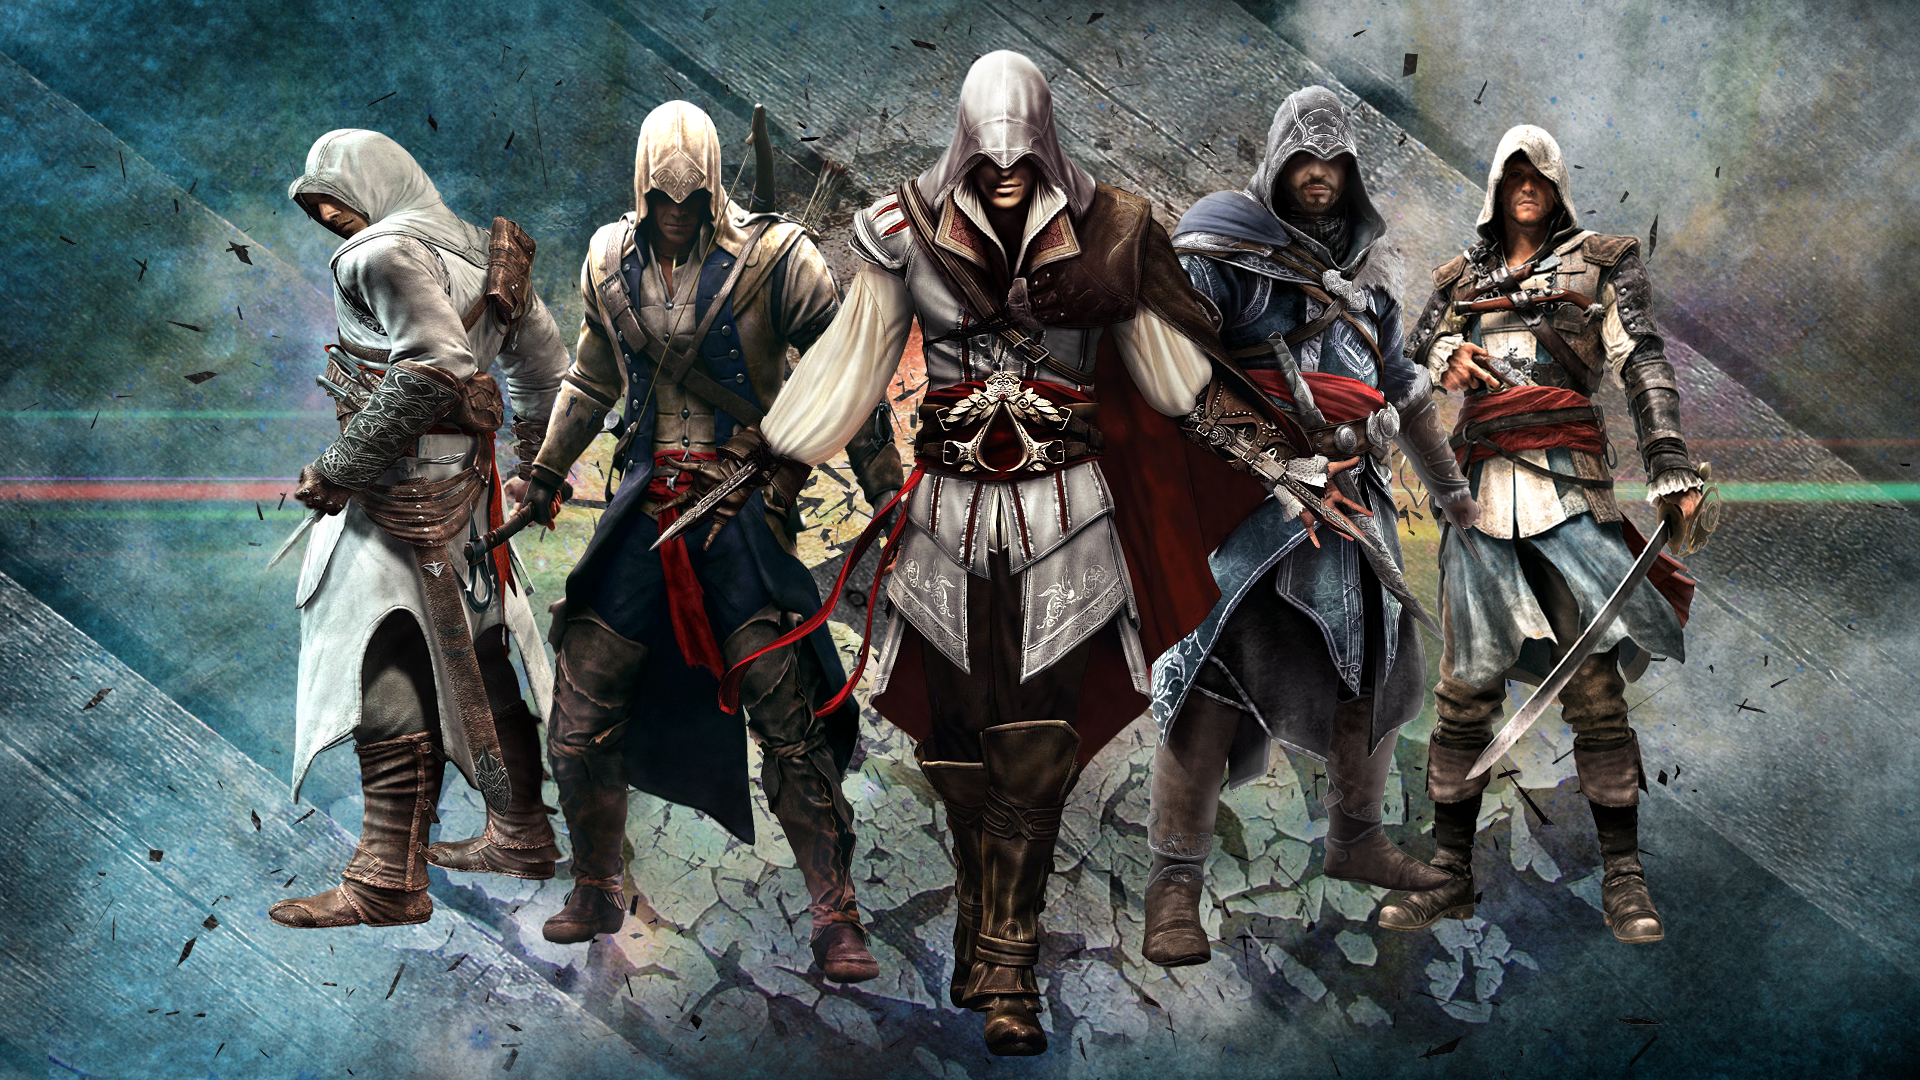 How to Save the Brotherhood: 9 Ways Ubisoft Can Improve the Assassin's Creed Franchise